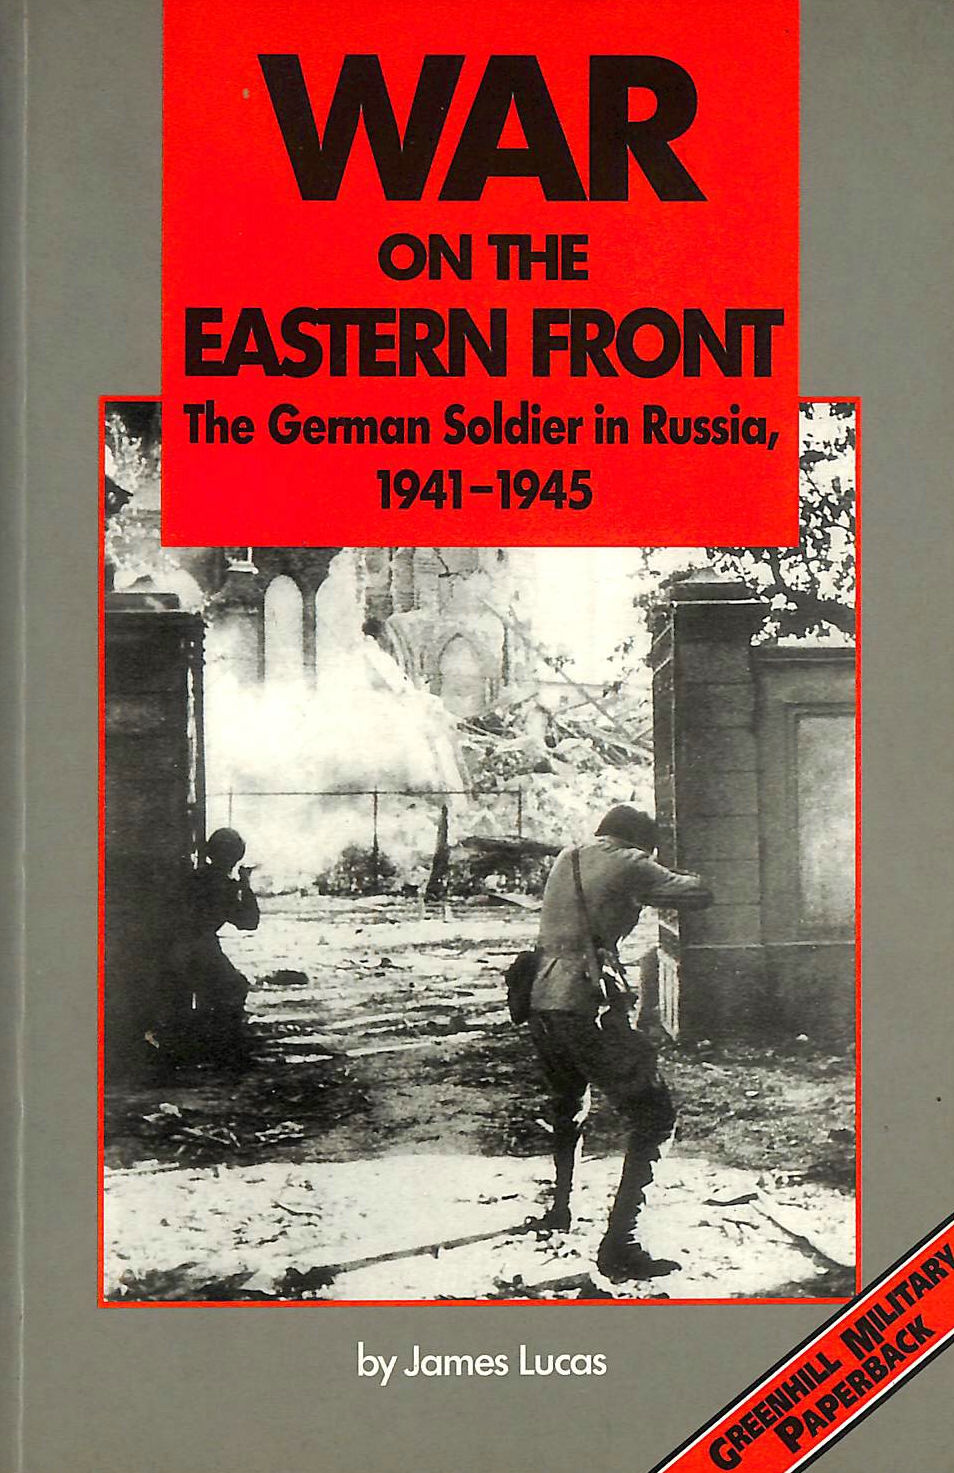 Image for War on the Eastern Front: The German Soldier in Russia, 1941-45 (Greenhill Military Paperback S.)